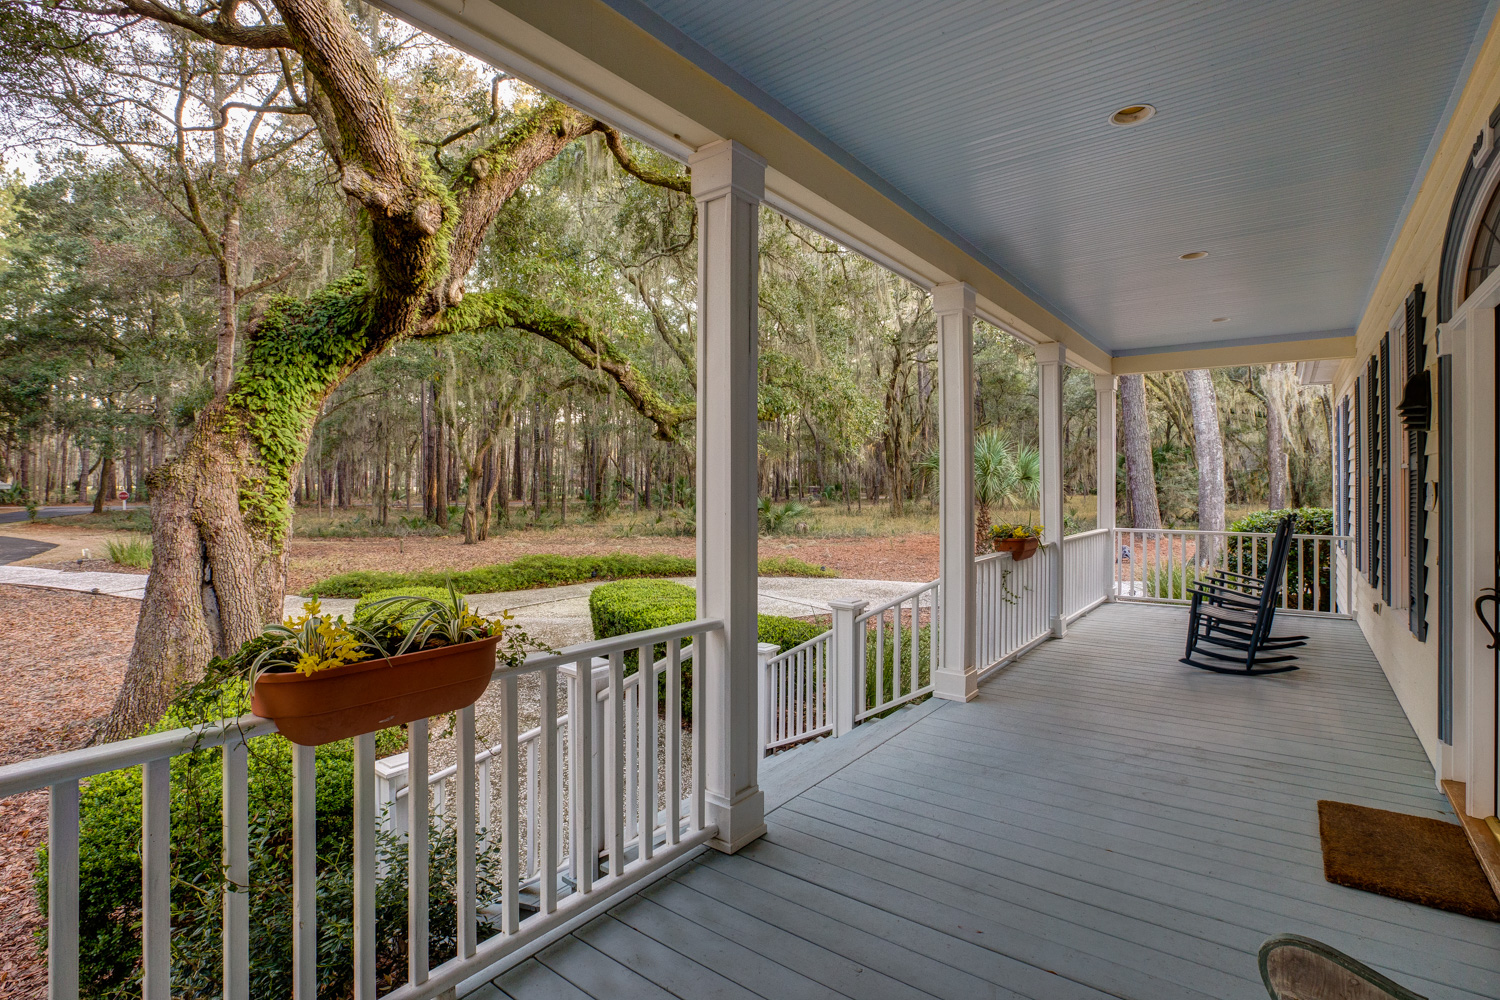 040 front-porch-chairs.jpg